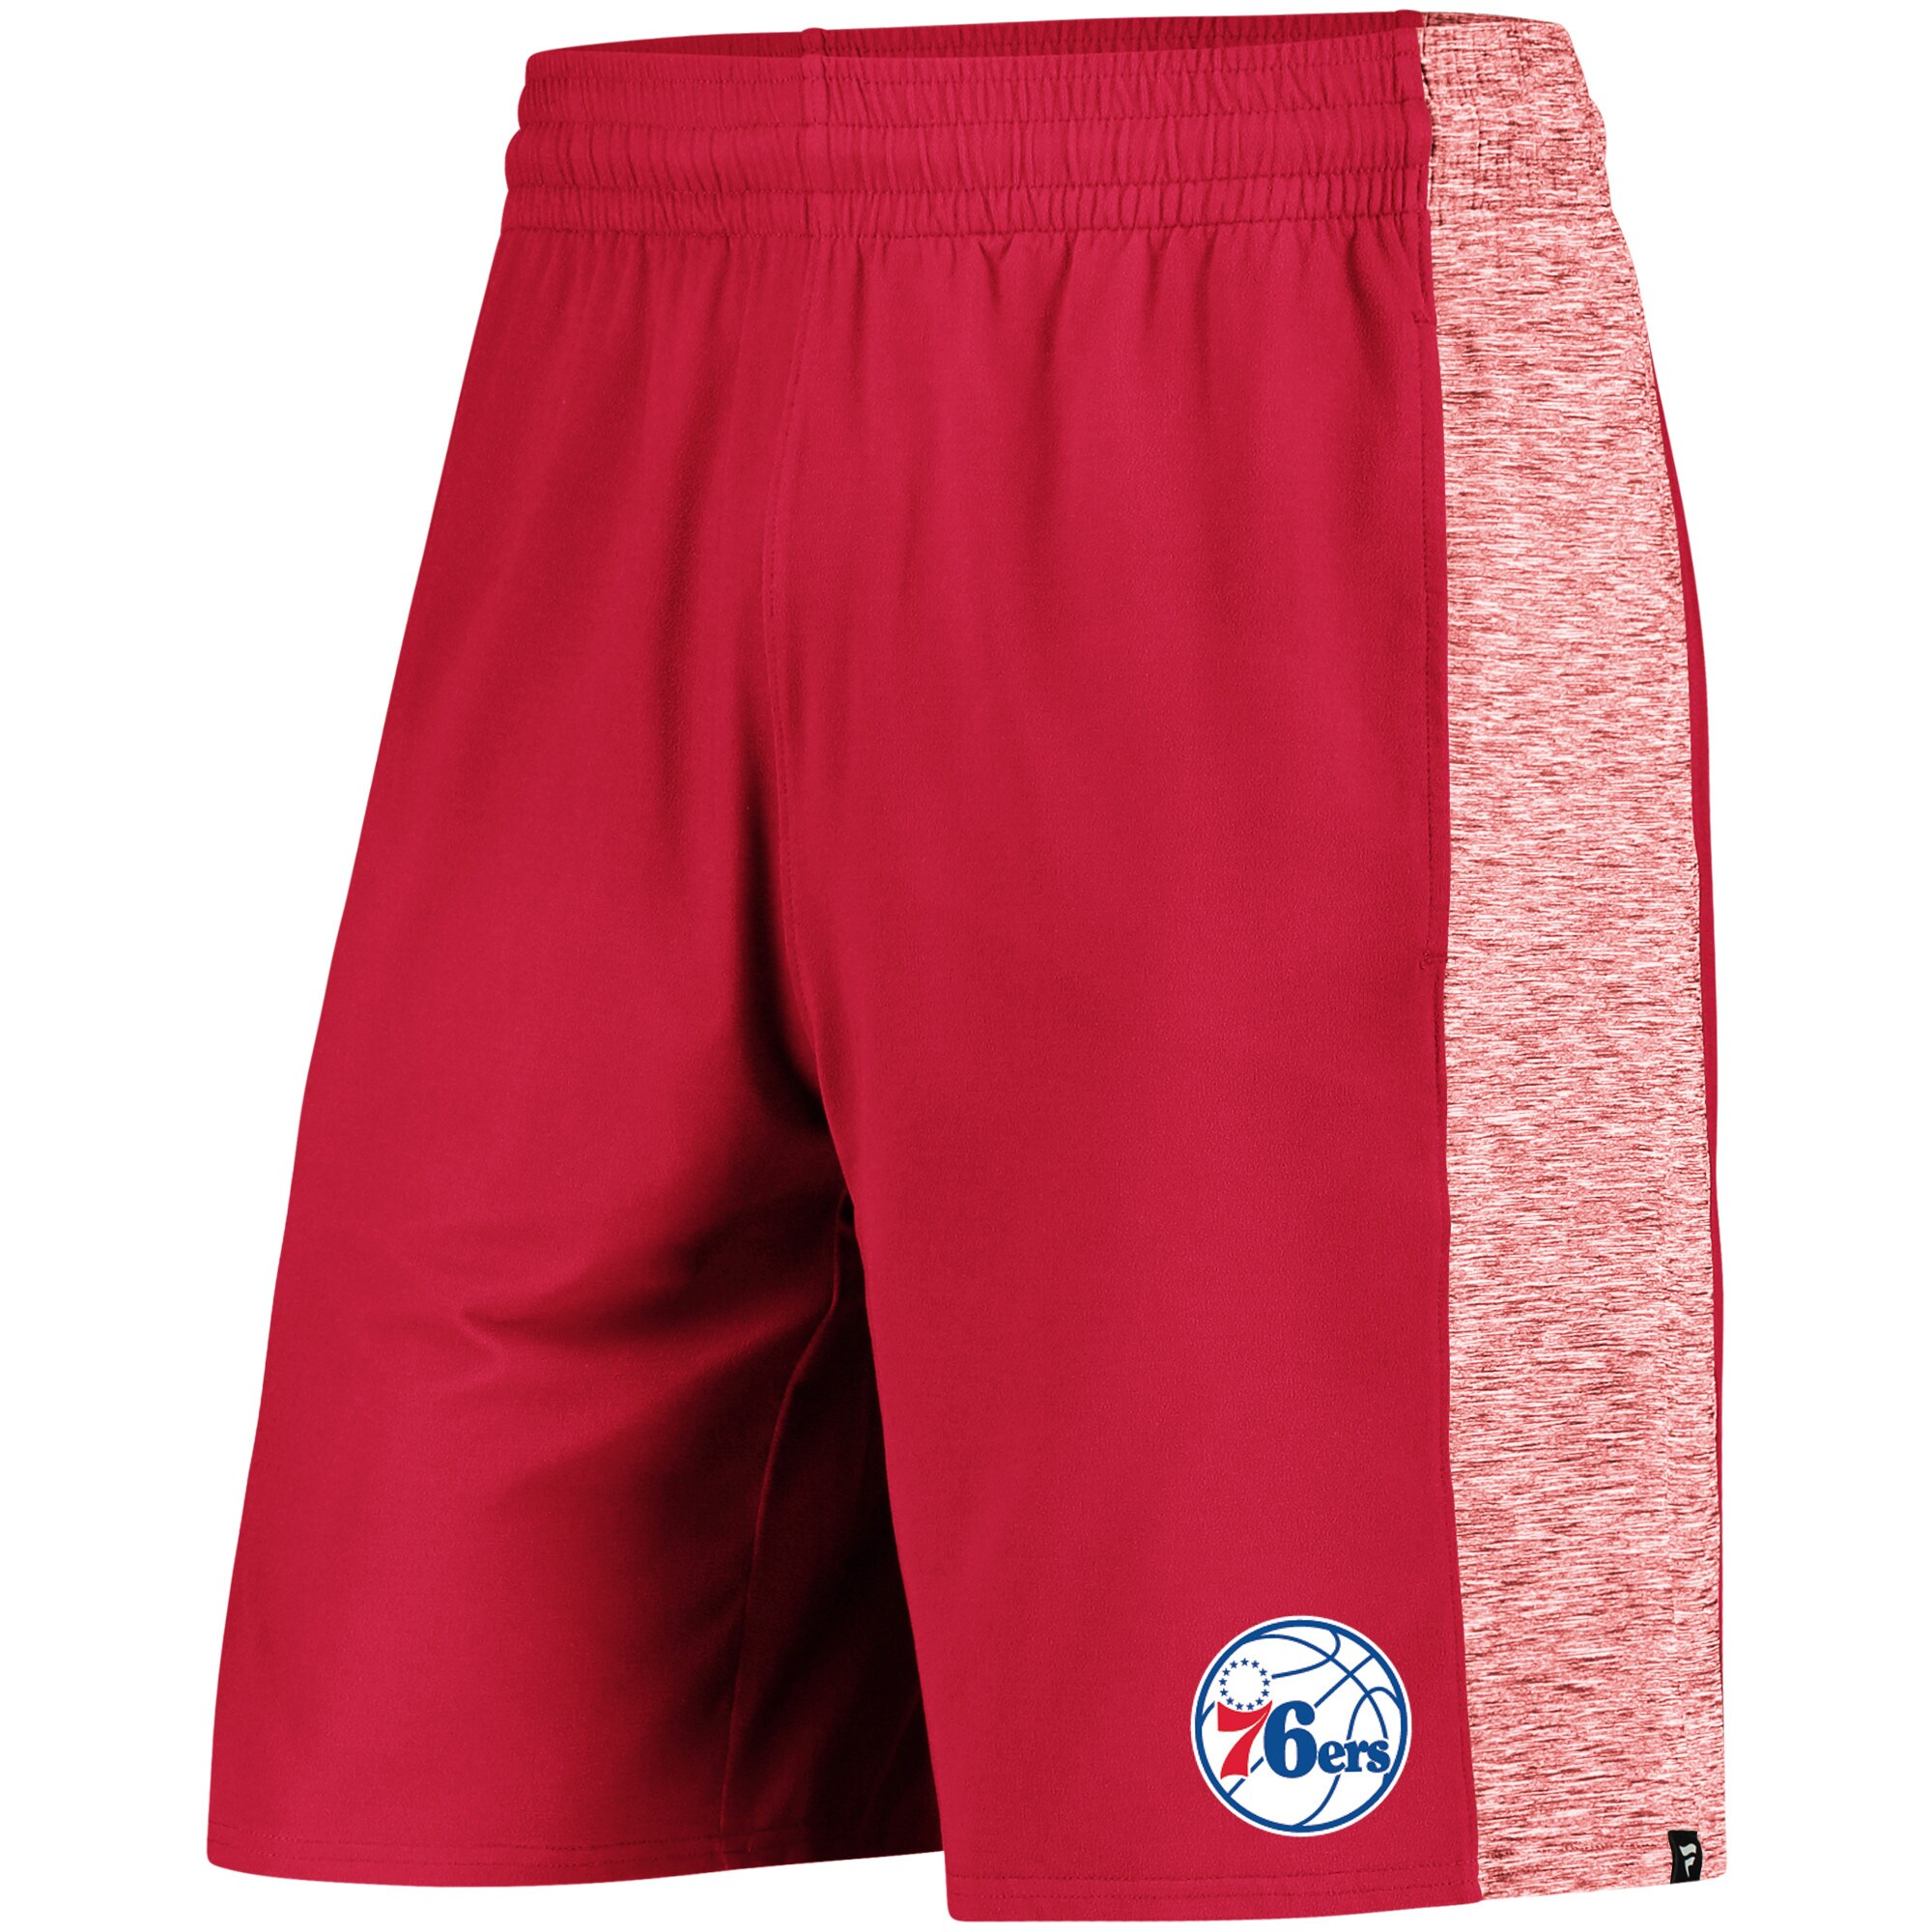 Philadelphia 76ers Fanatics Branded Made to Move Shorts - Red